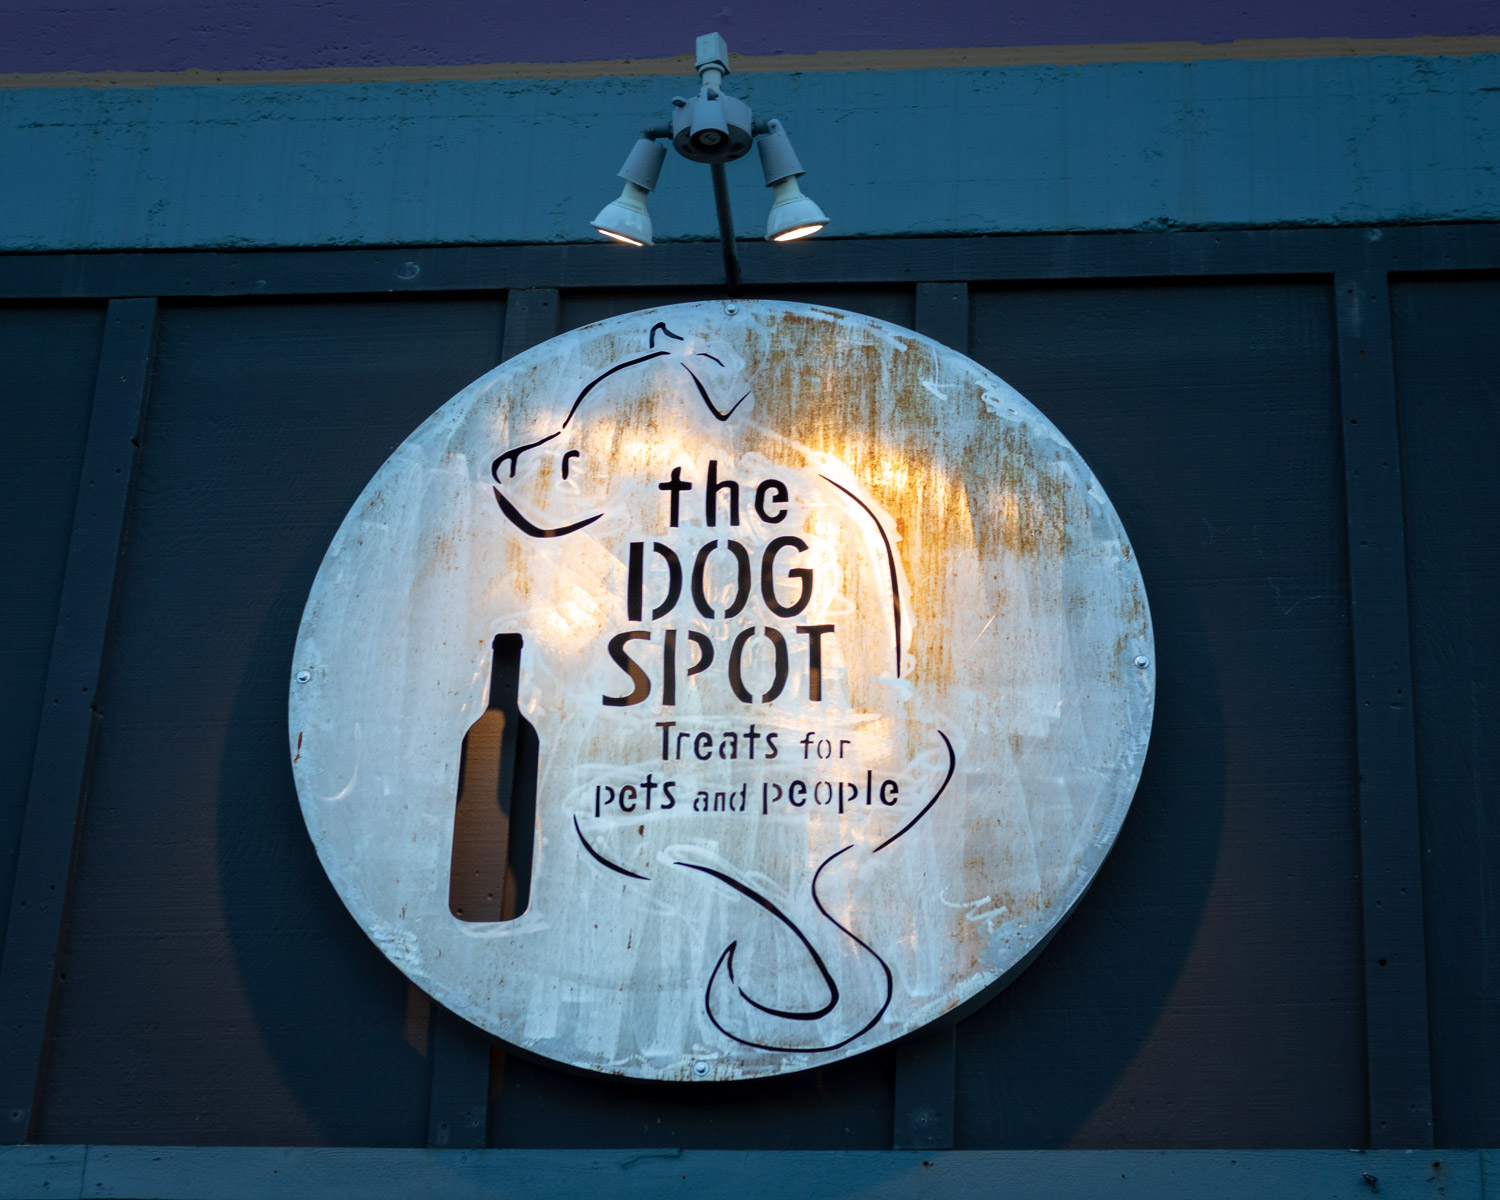 The Dog Spot - Treats for Pets and People -Joseph, Oregon - Photo by Ron Huckins